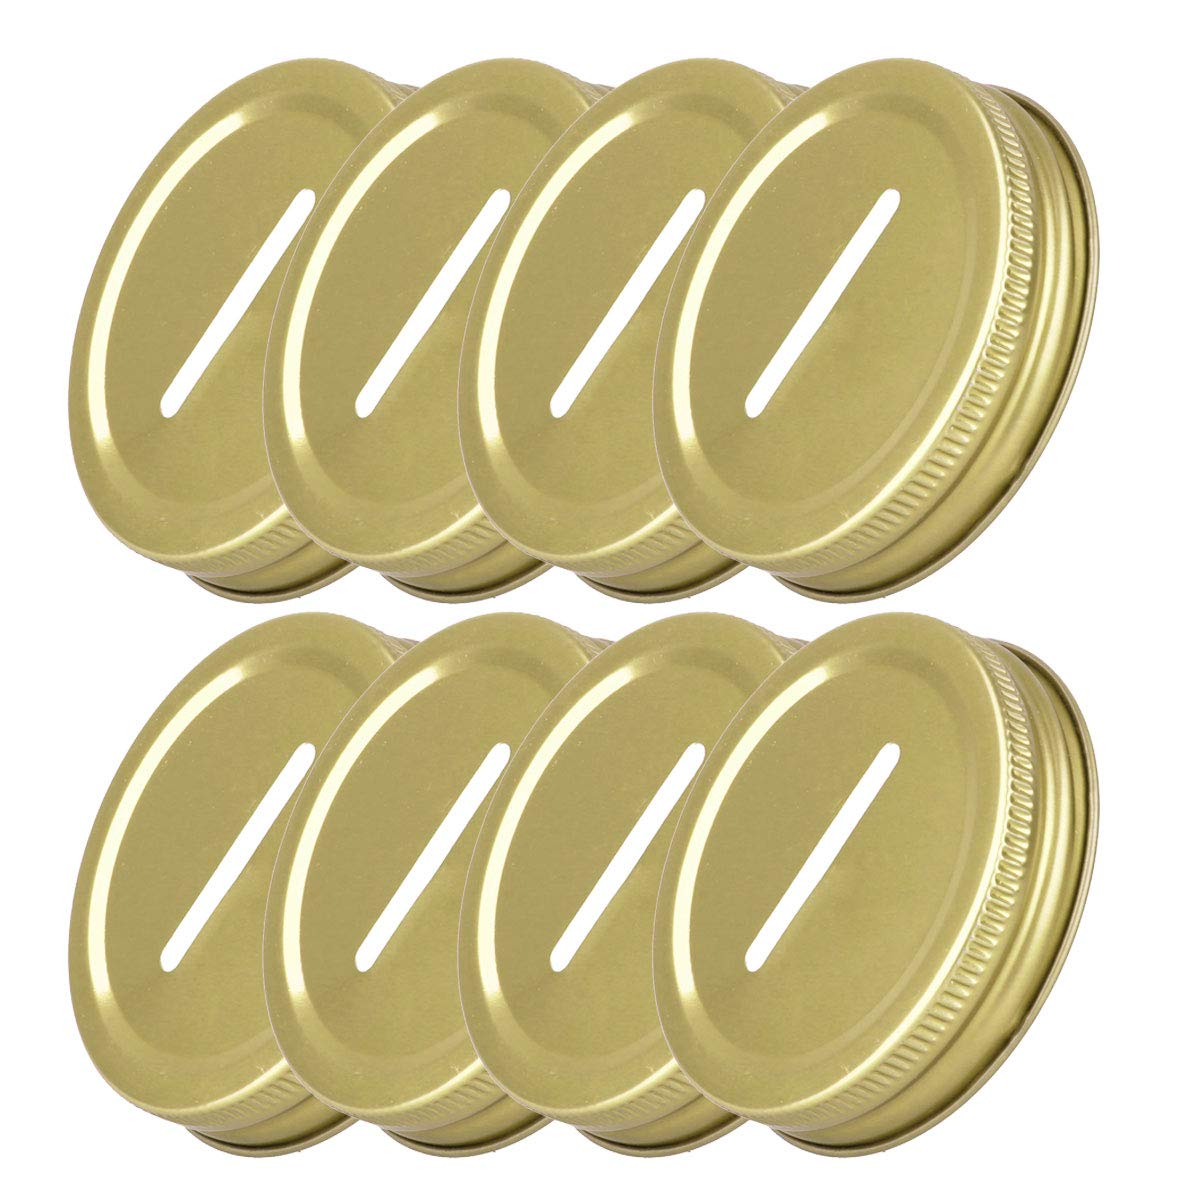 FEESHOW 8pcs Stainless Steel Coin Slot Bank Lid Inserts for Mason, Ball, Canning Jars Gold One Size